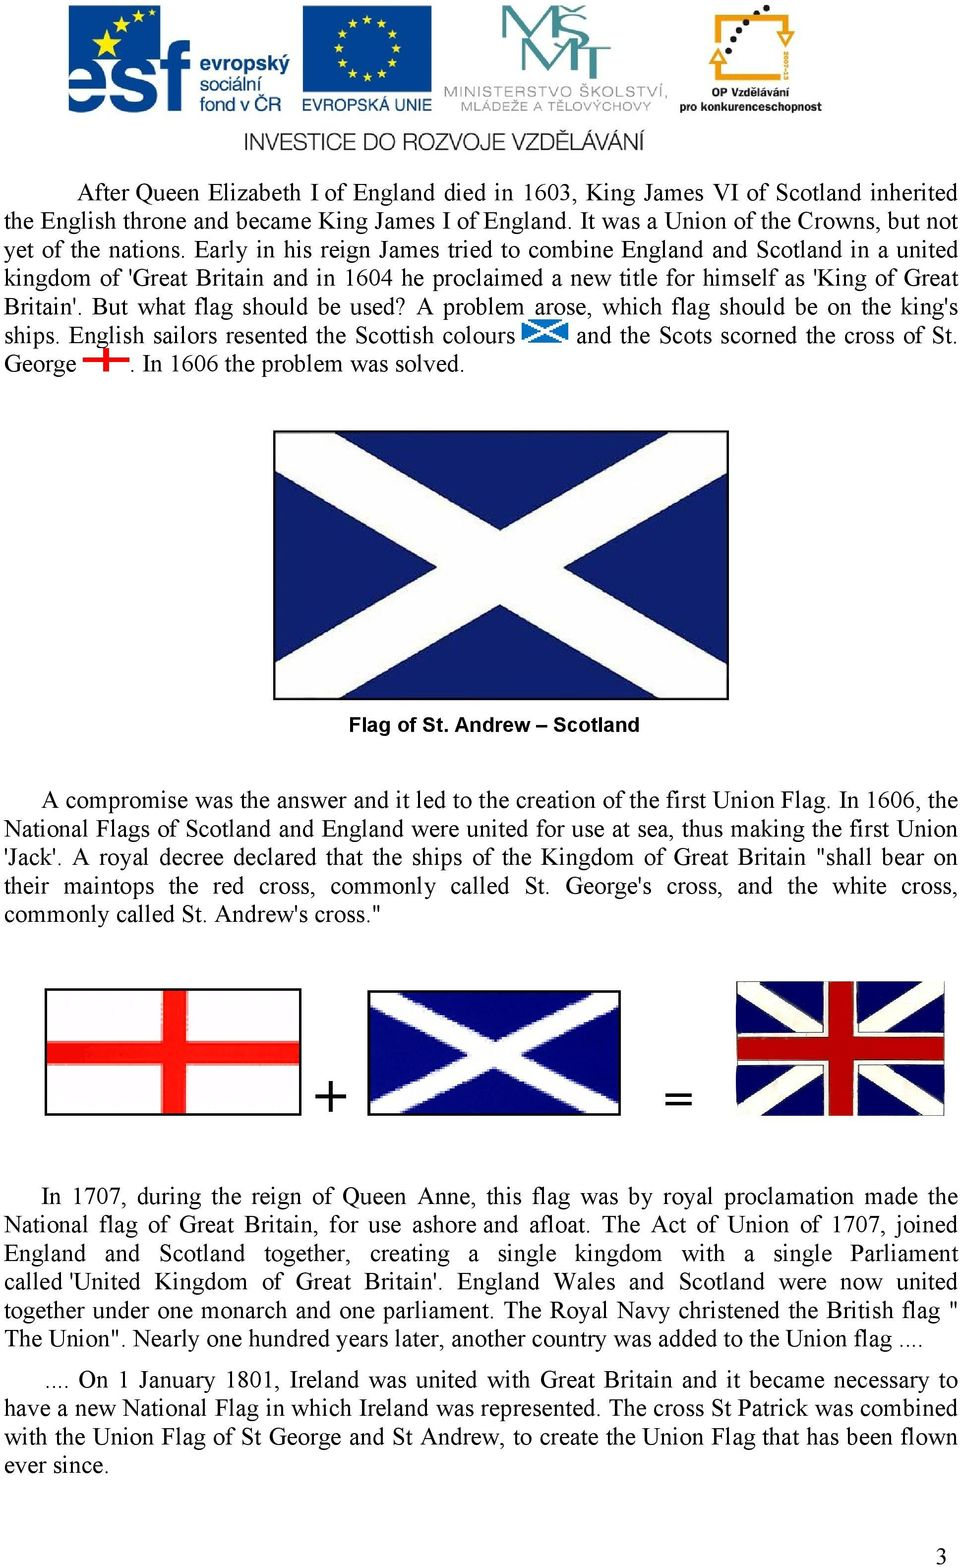 But what flag should be used? A problem arose, which flag should be on the king's ships. English sailors resented the Scottish colours and the Scots scorned the cross of St. George.